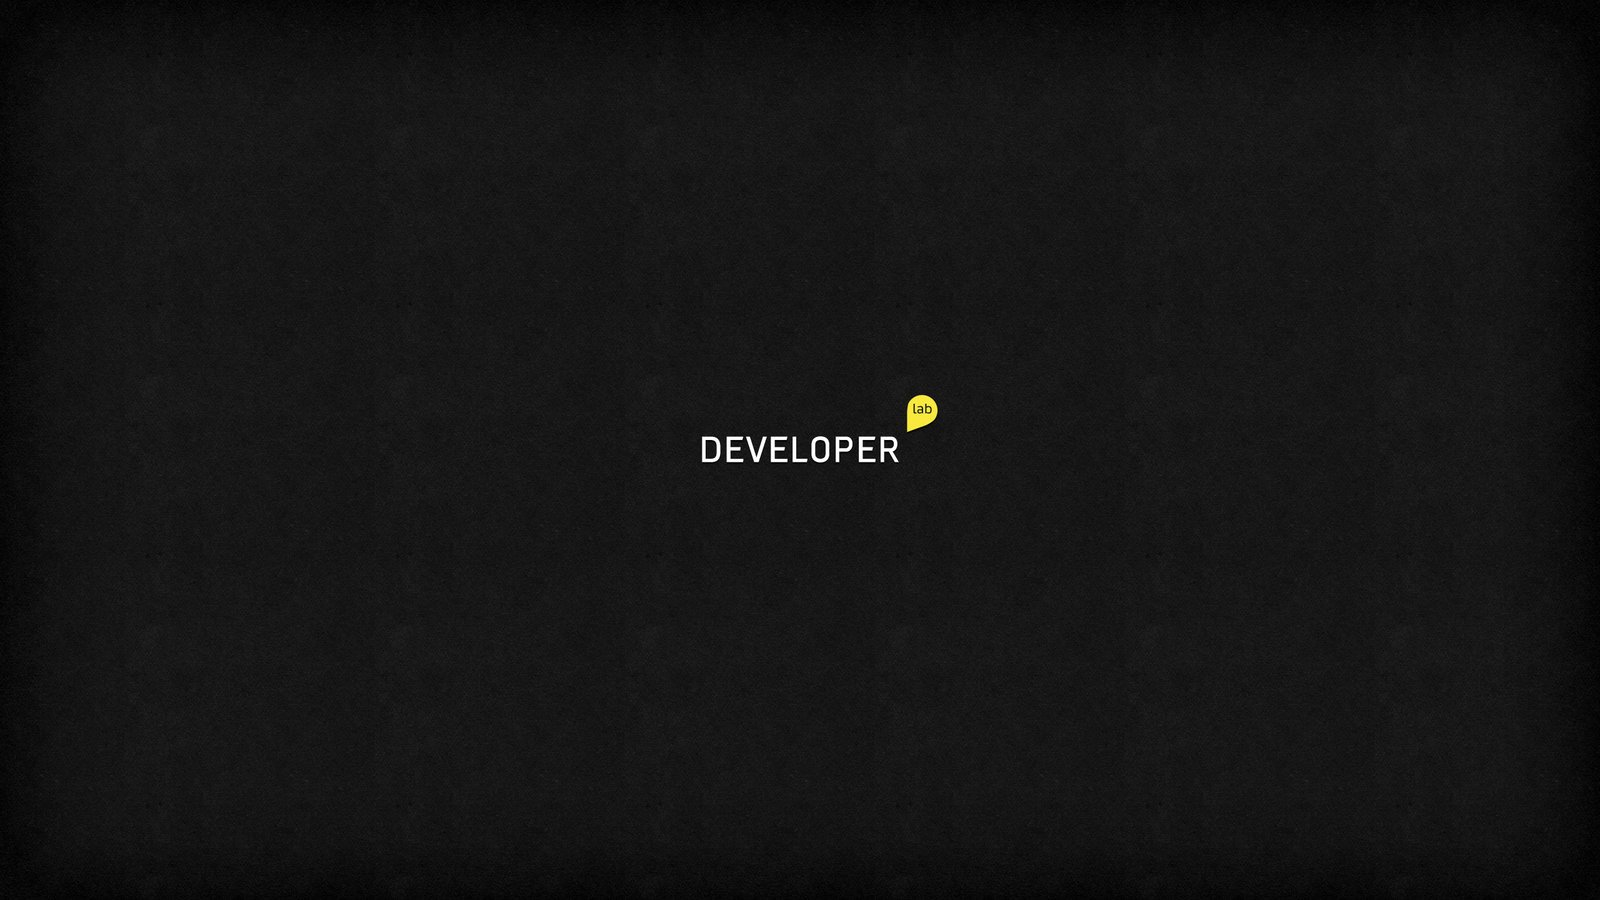 Developer lab black minimalist by theSamnite 1600x900